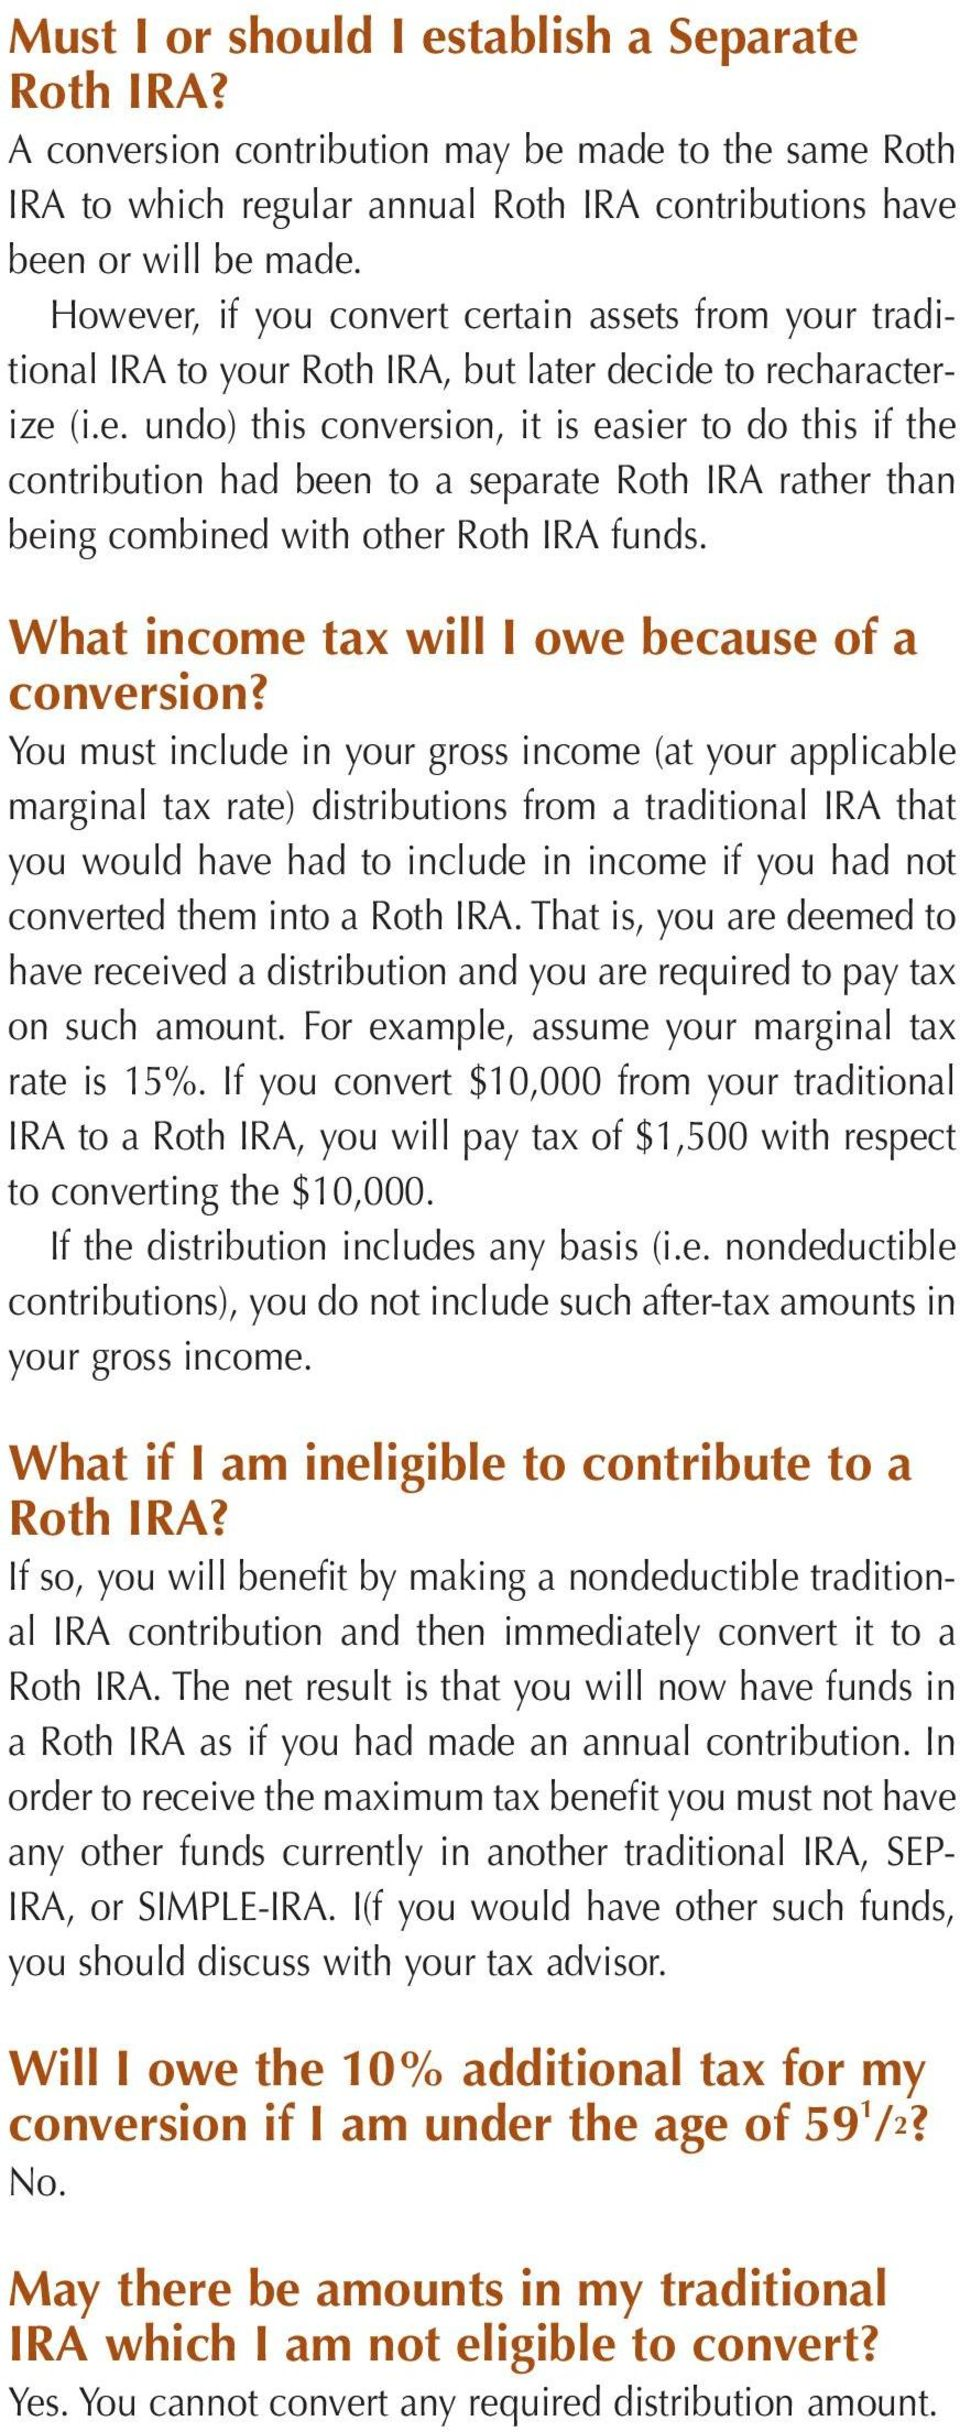 What income tax will I owe because of a conversion?